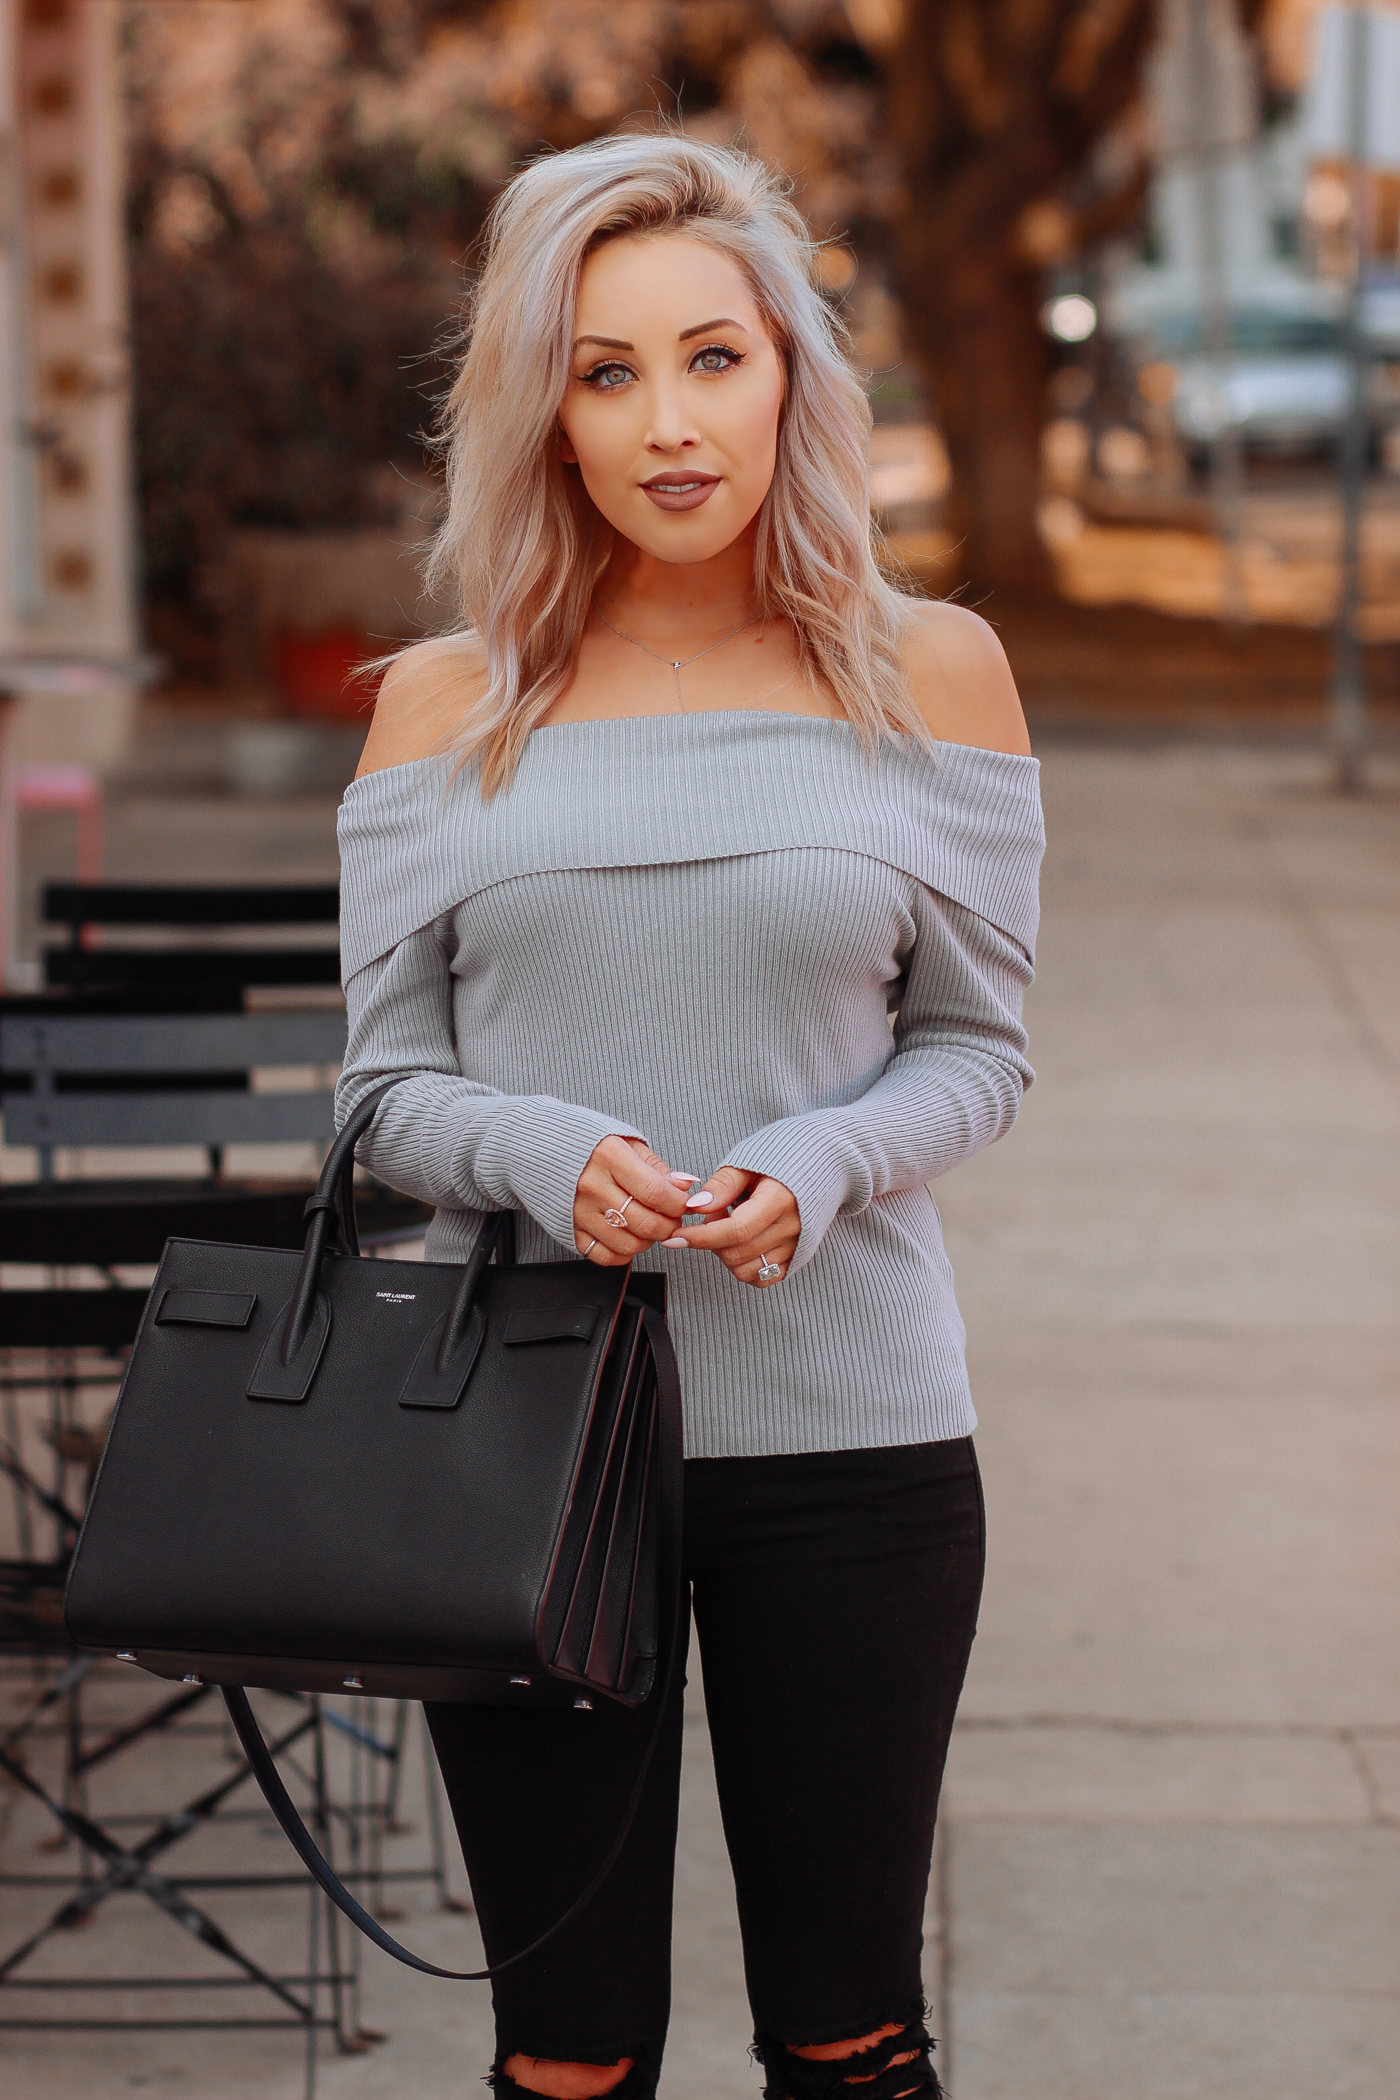 Blondie in the City | Off The Shoulder Sweater | Saint Laurent Bag